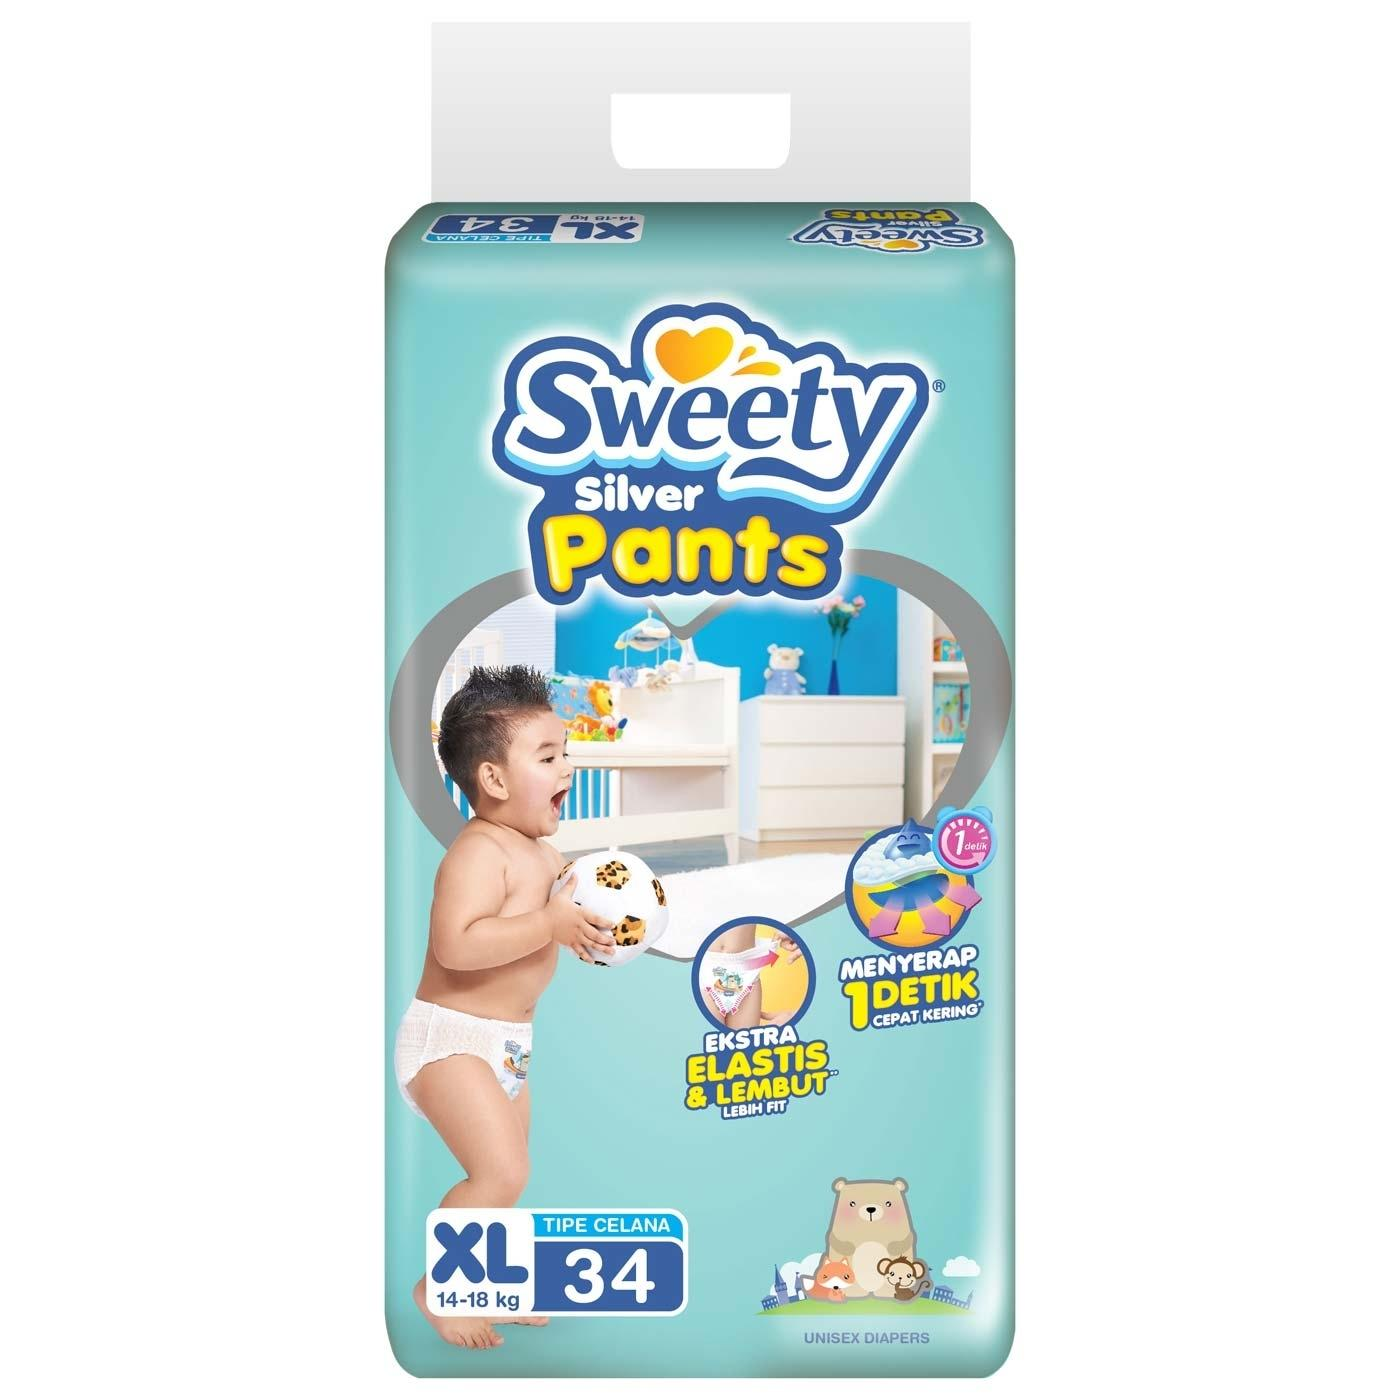 Jual Sweety Diapers Silver Pants Xl 34 Sweety